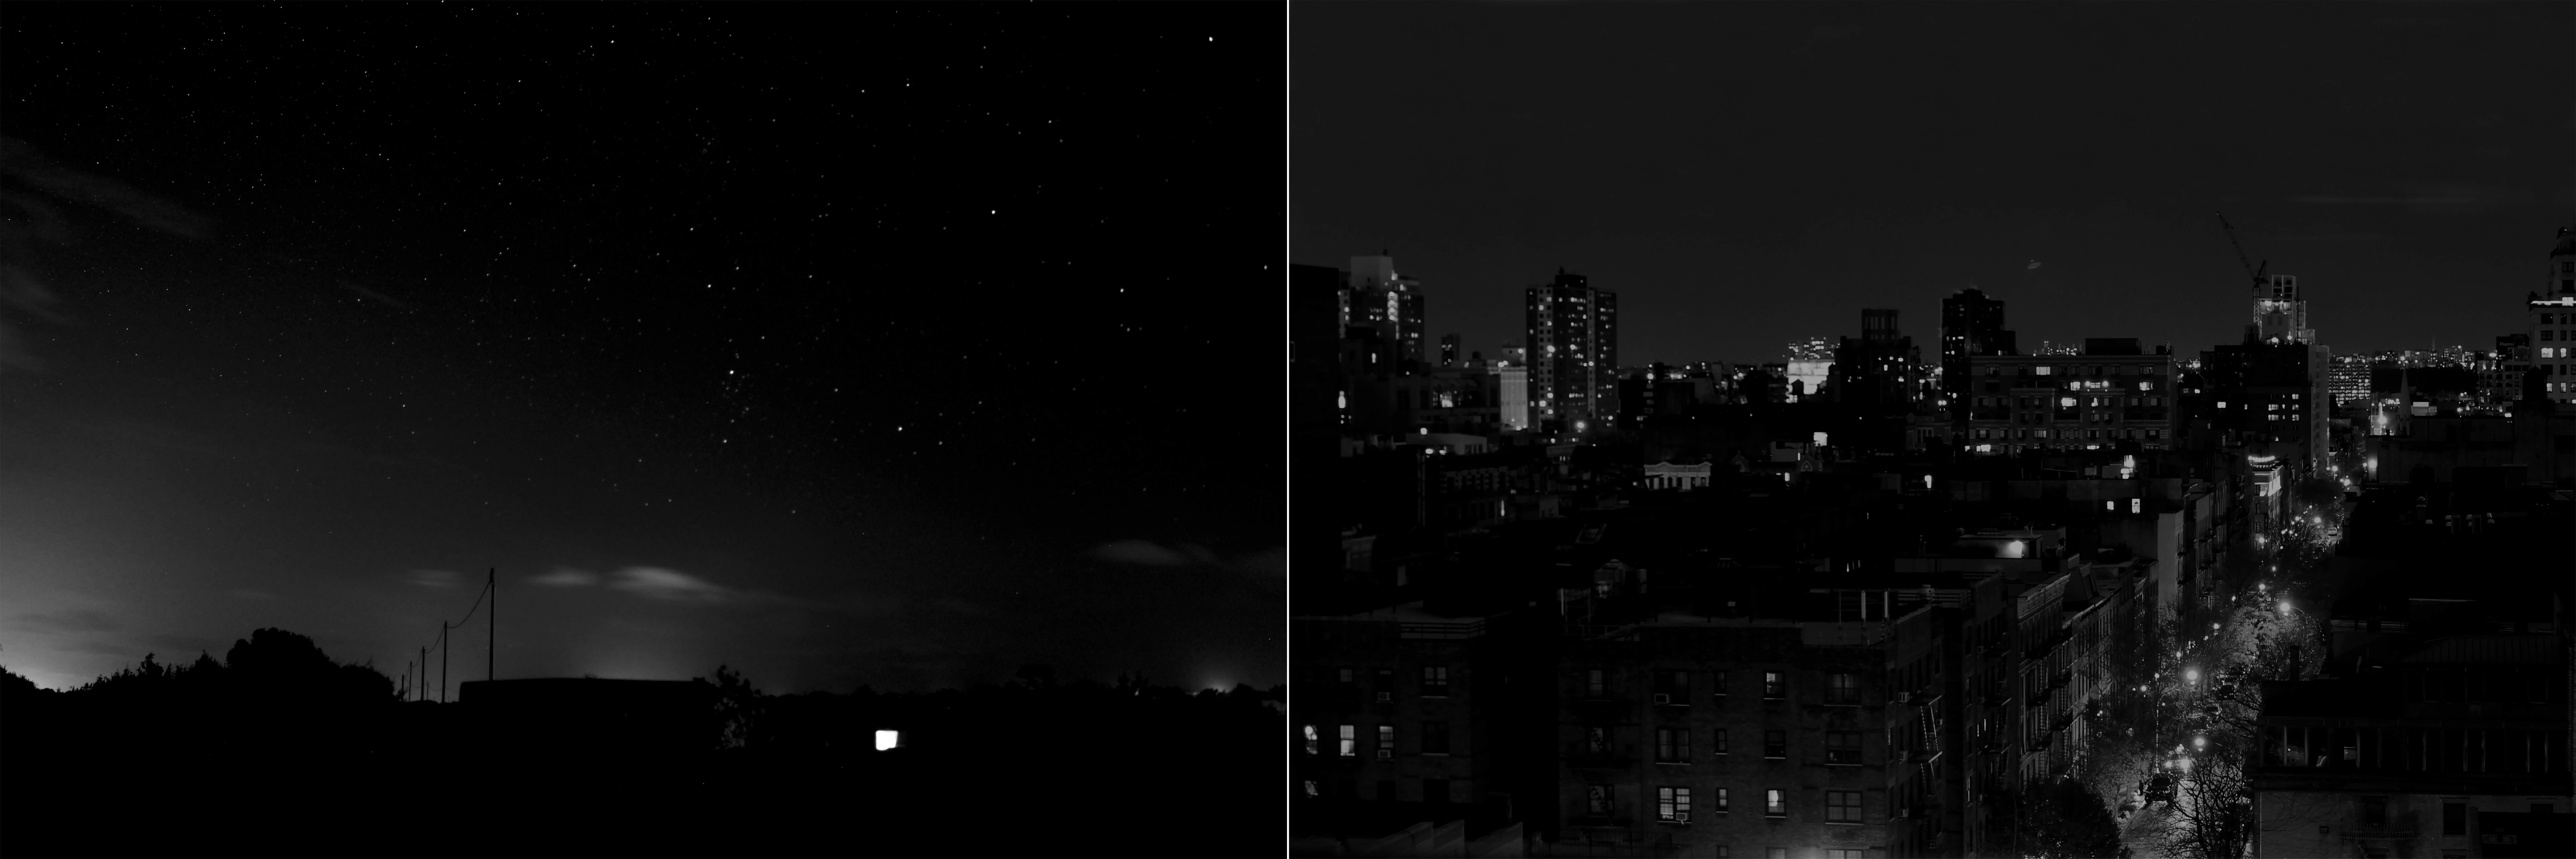 Stars artwork, comparing the night sky in Formentera, with stars and a single light of one house, with the night sky in Manhattan, New York without stars but lights in buildings that resemble them. Part of the Formenhattan exhibit.